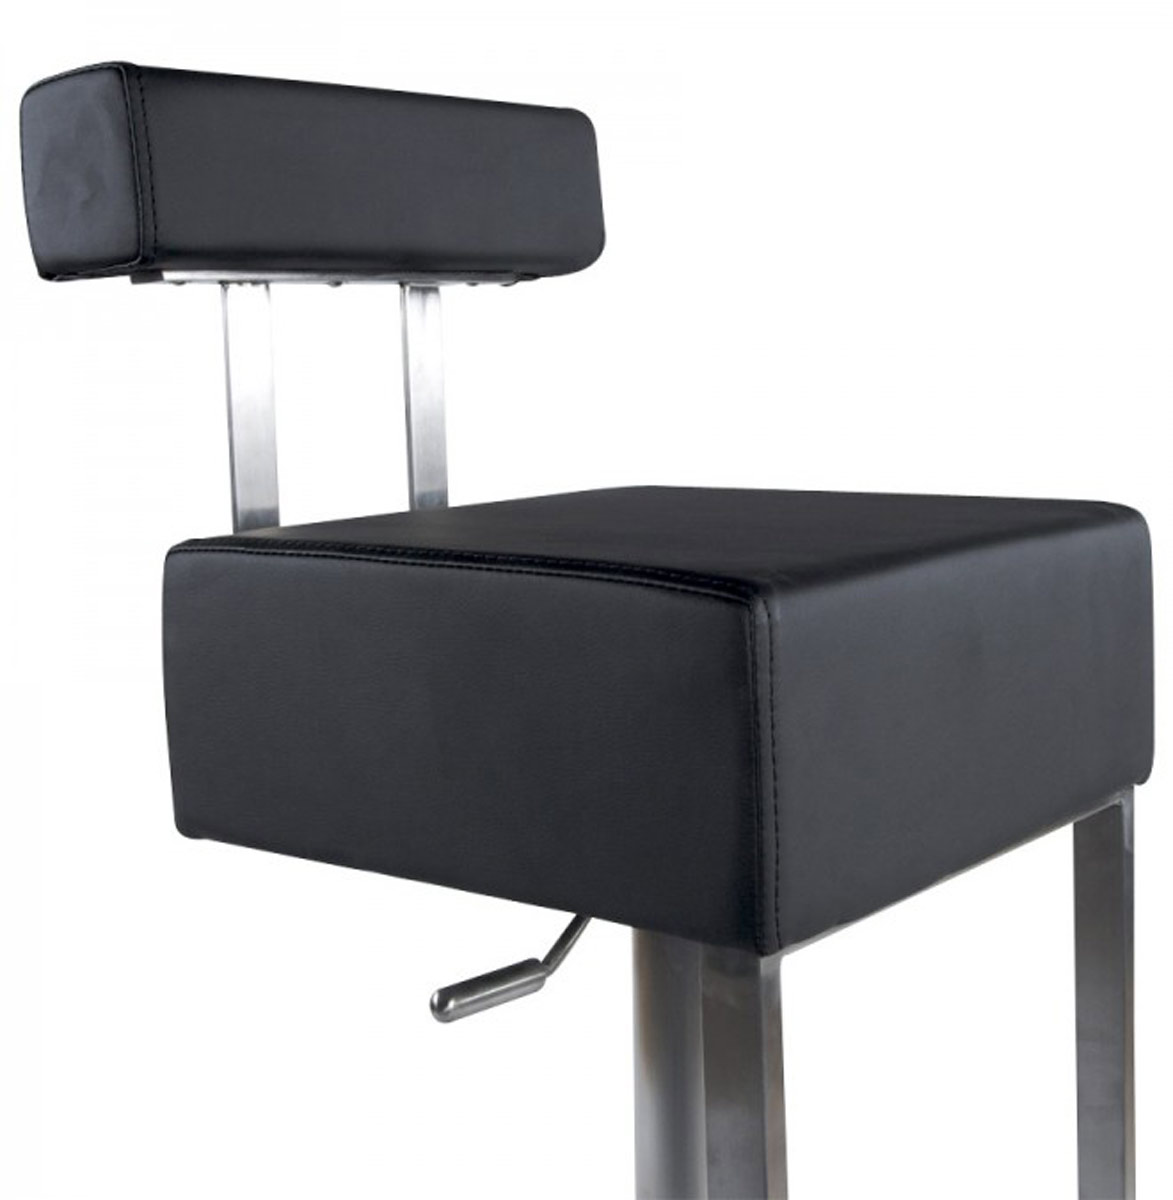 Tabouret de bar assise rembourr e confortable hue for Siege de tabouret de bar